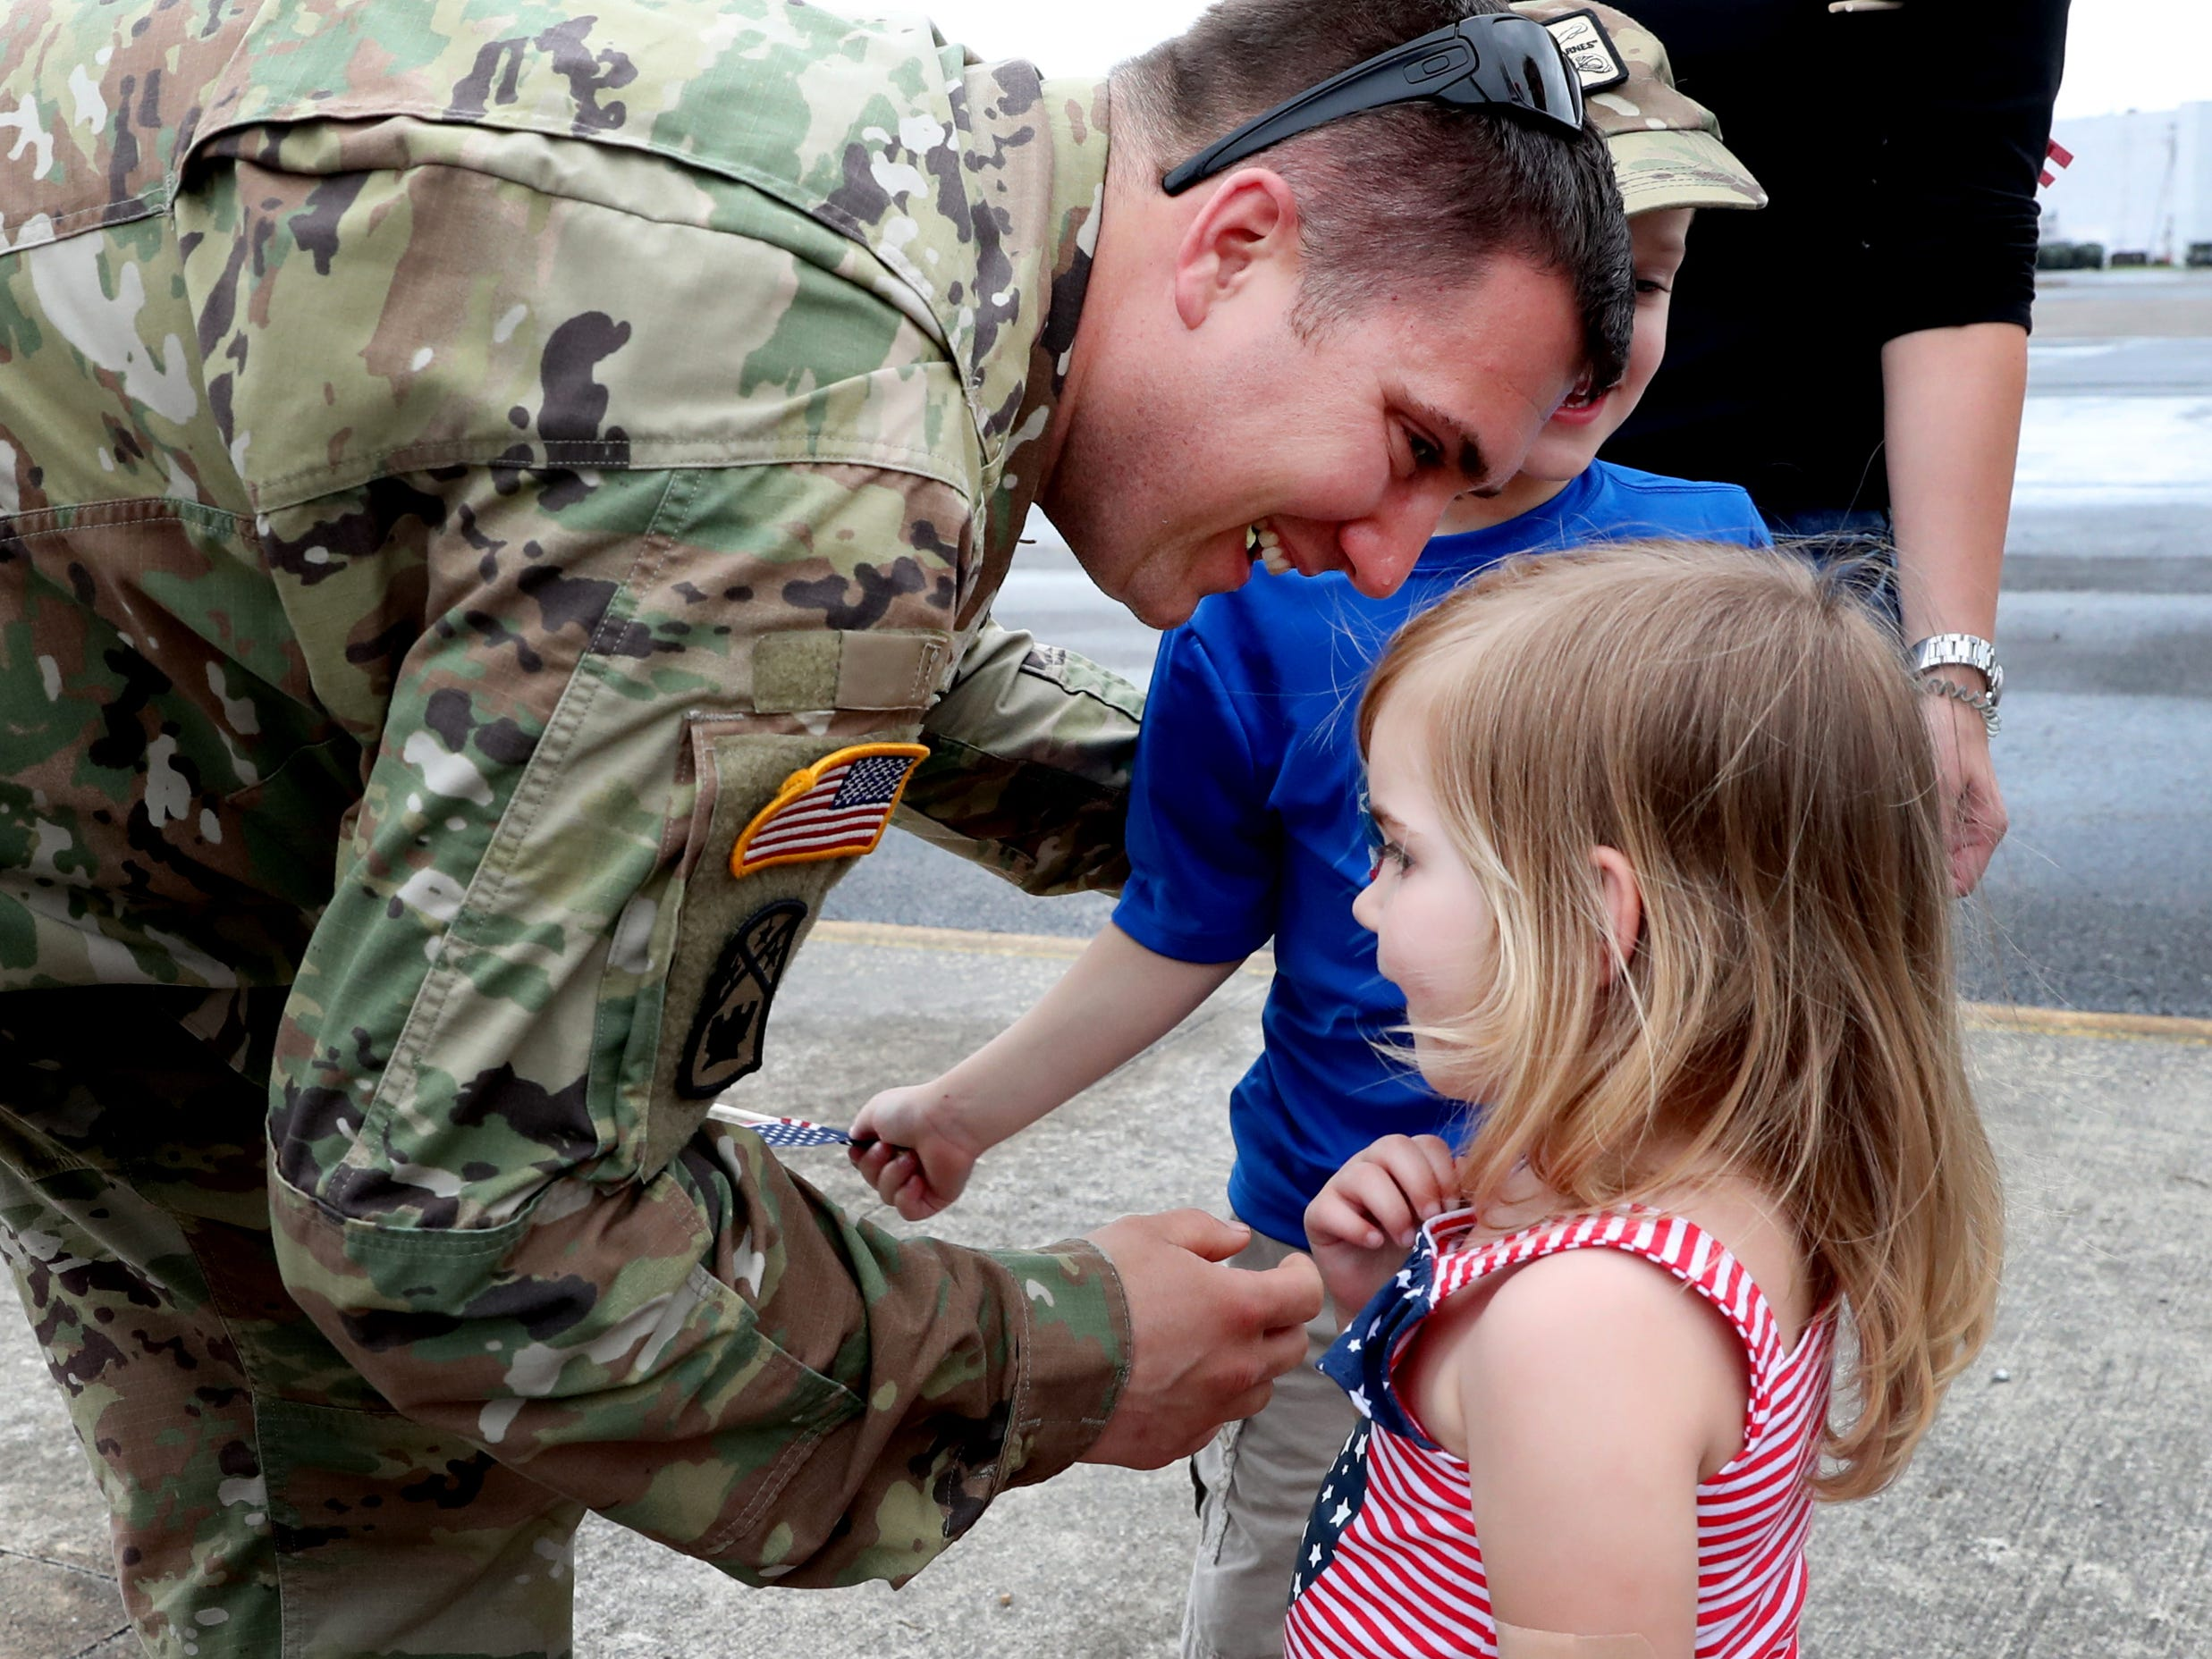 Sgt. Jake Baker with the 278th ACR, greets his 2 year-old daughter Deeley Baker after he got off a plane, at the Volunteer Training Site in Smyrna, from a 9 month overseas deployment on Thursday, May 9, 2019.